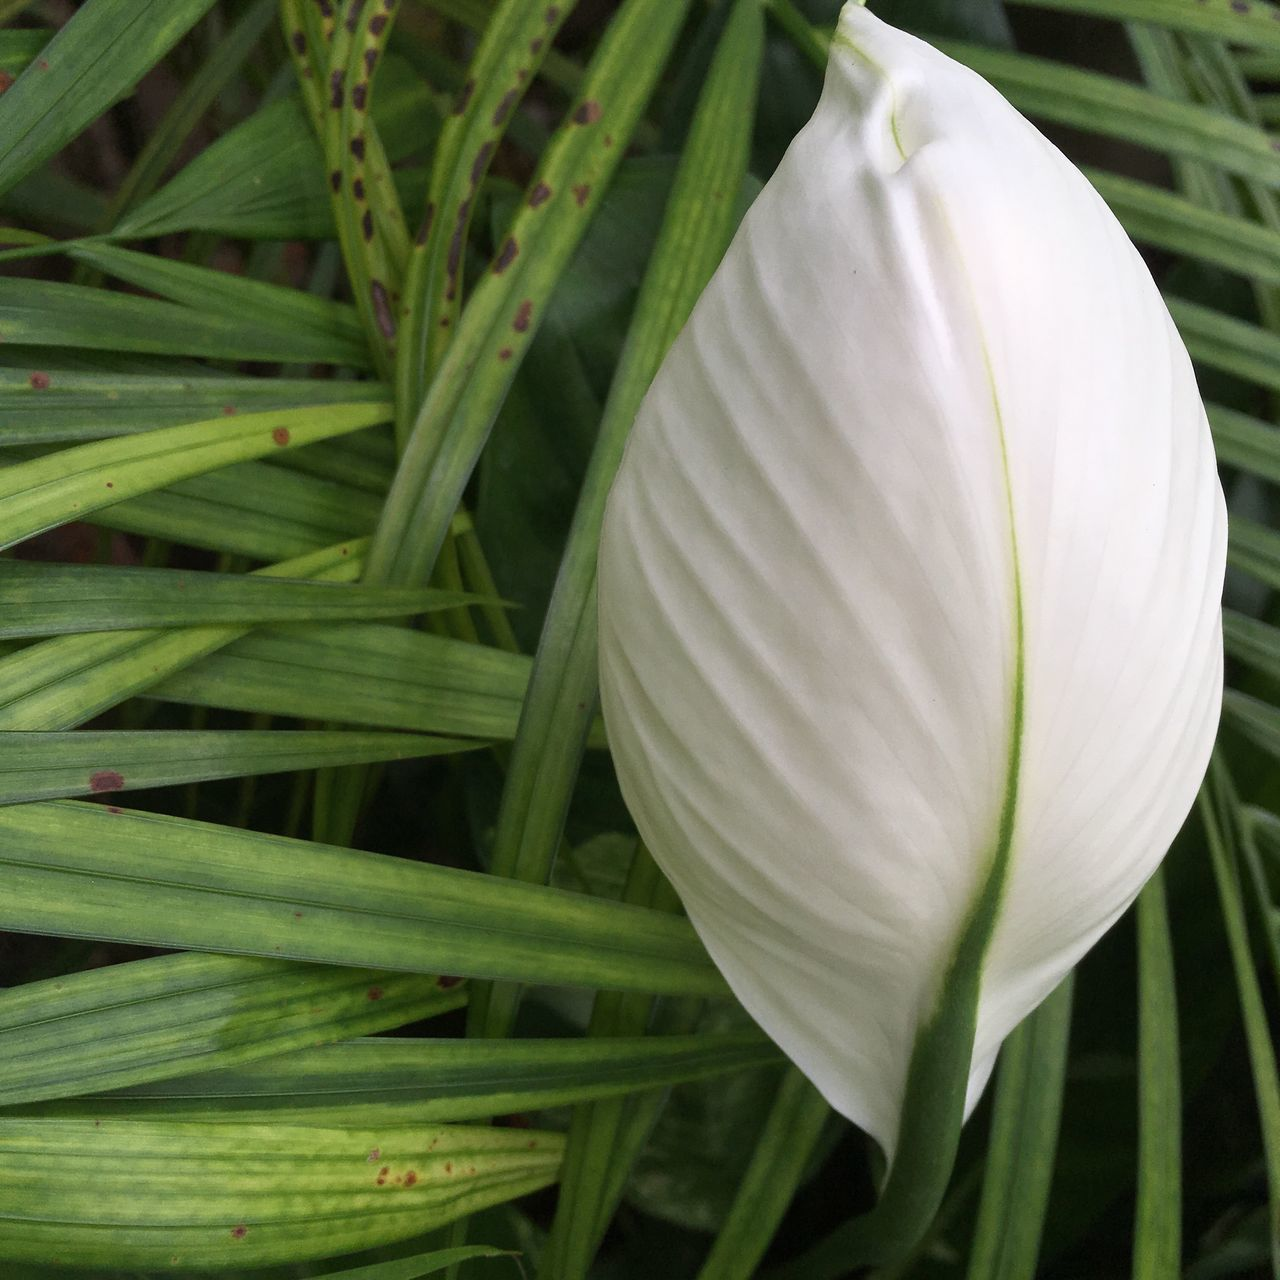 growth, plant, freshness, flower, petal, beauty in nature, green color, nature, close-up, no people, white color, day, flower head, focus on foreground, outdoors, leaf, fragility, blooming